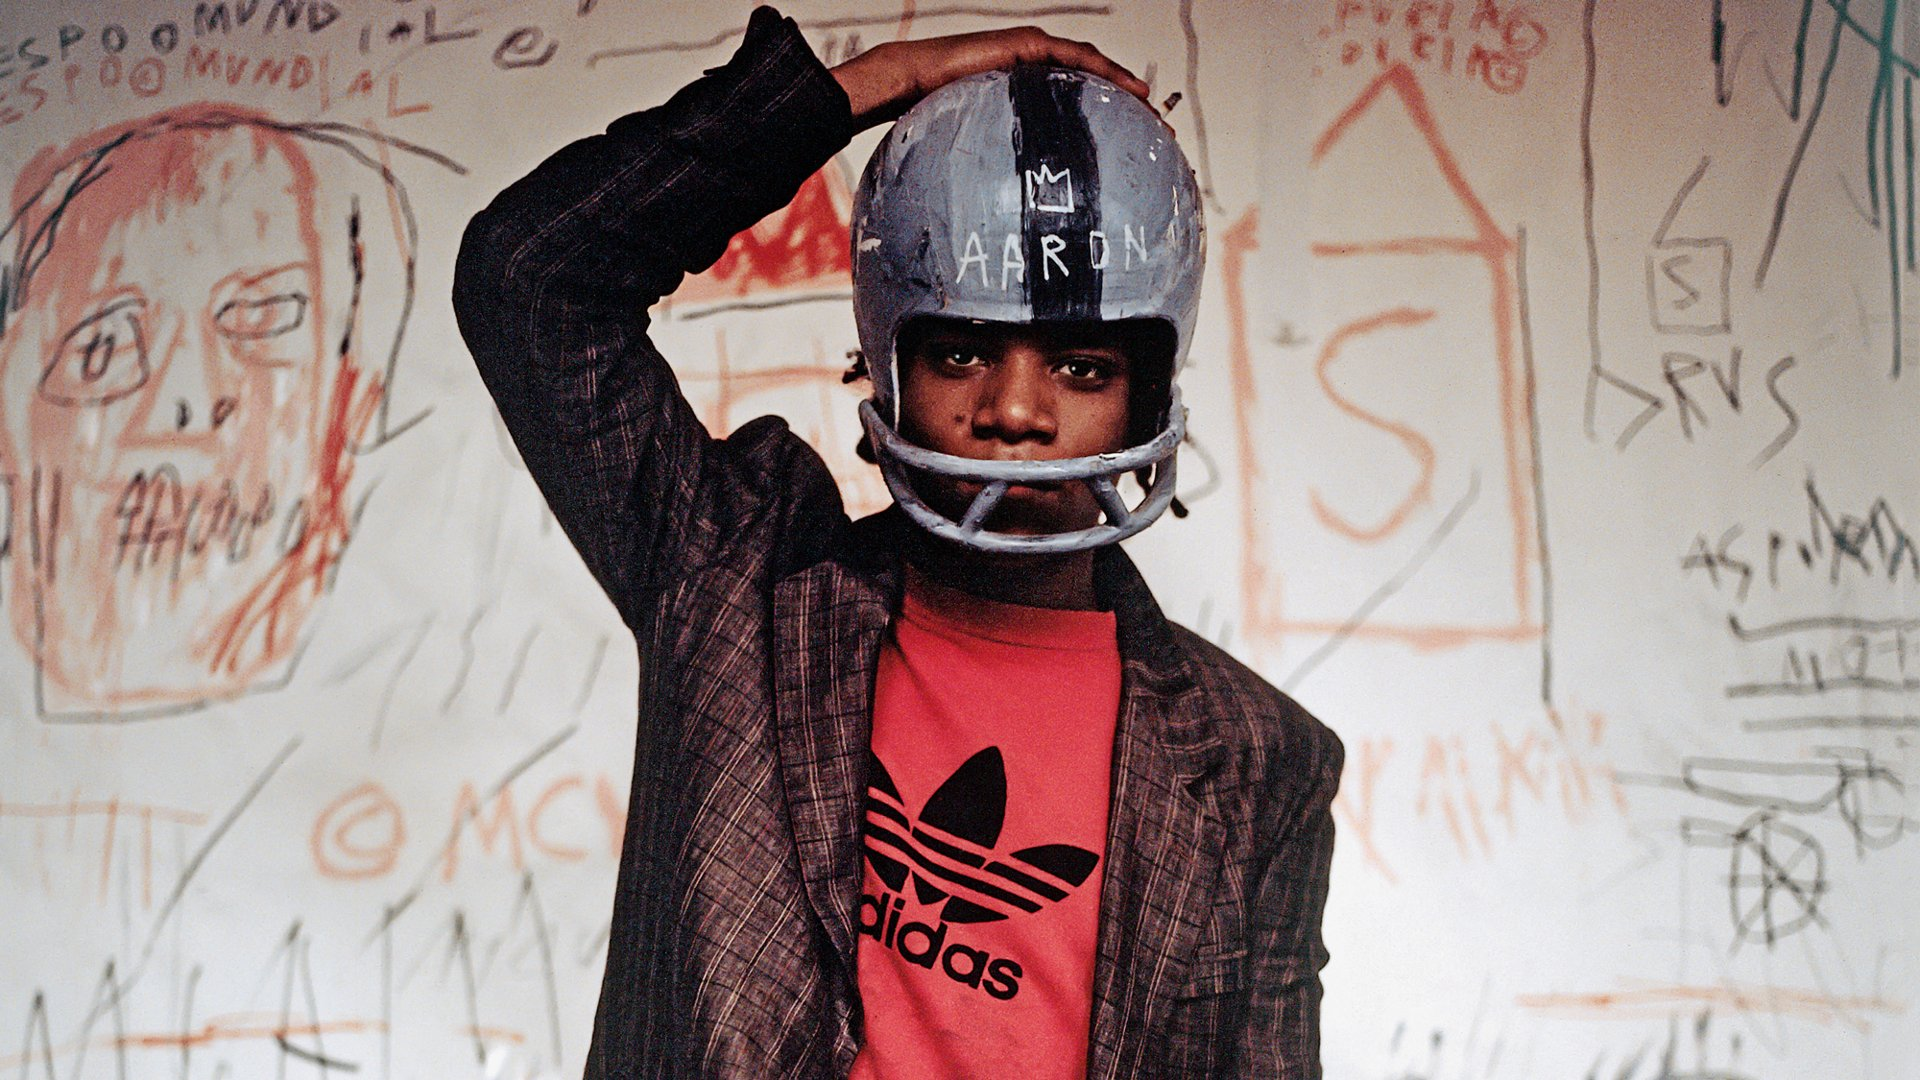 Art Bild Jean Michel Basquiat Is Still An Enigma The Atlantic